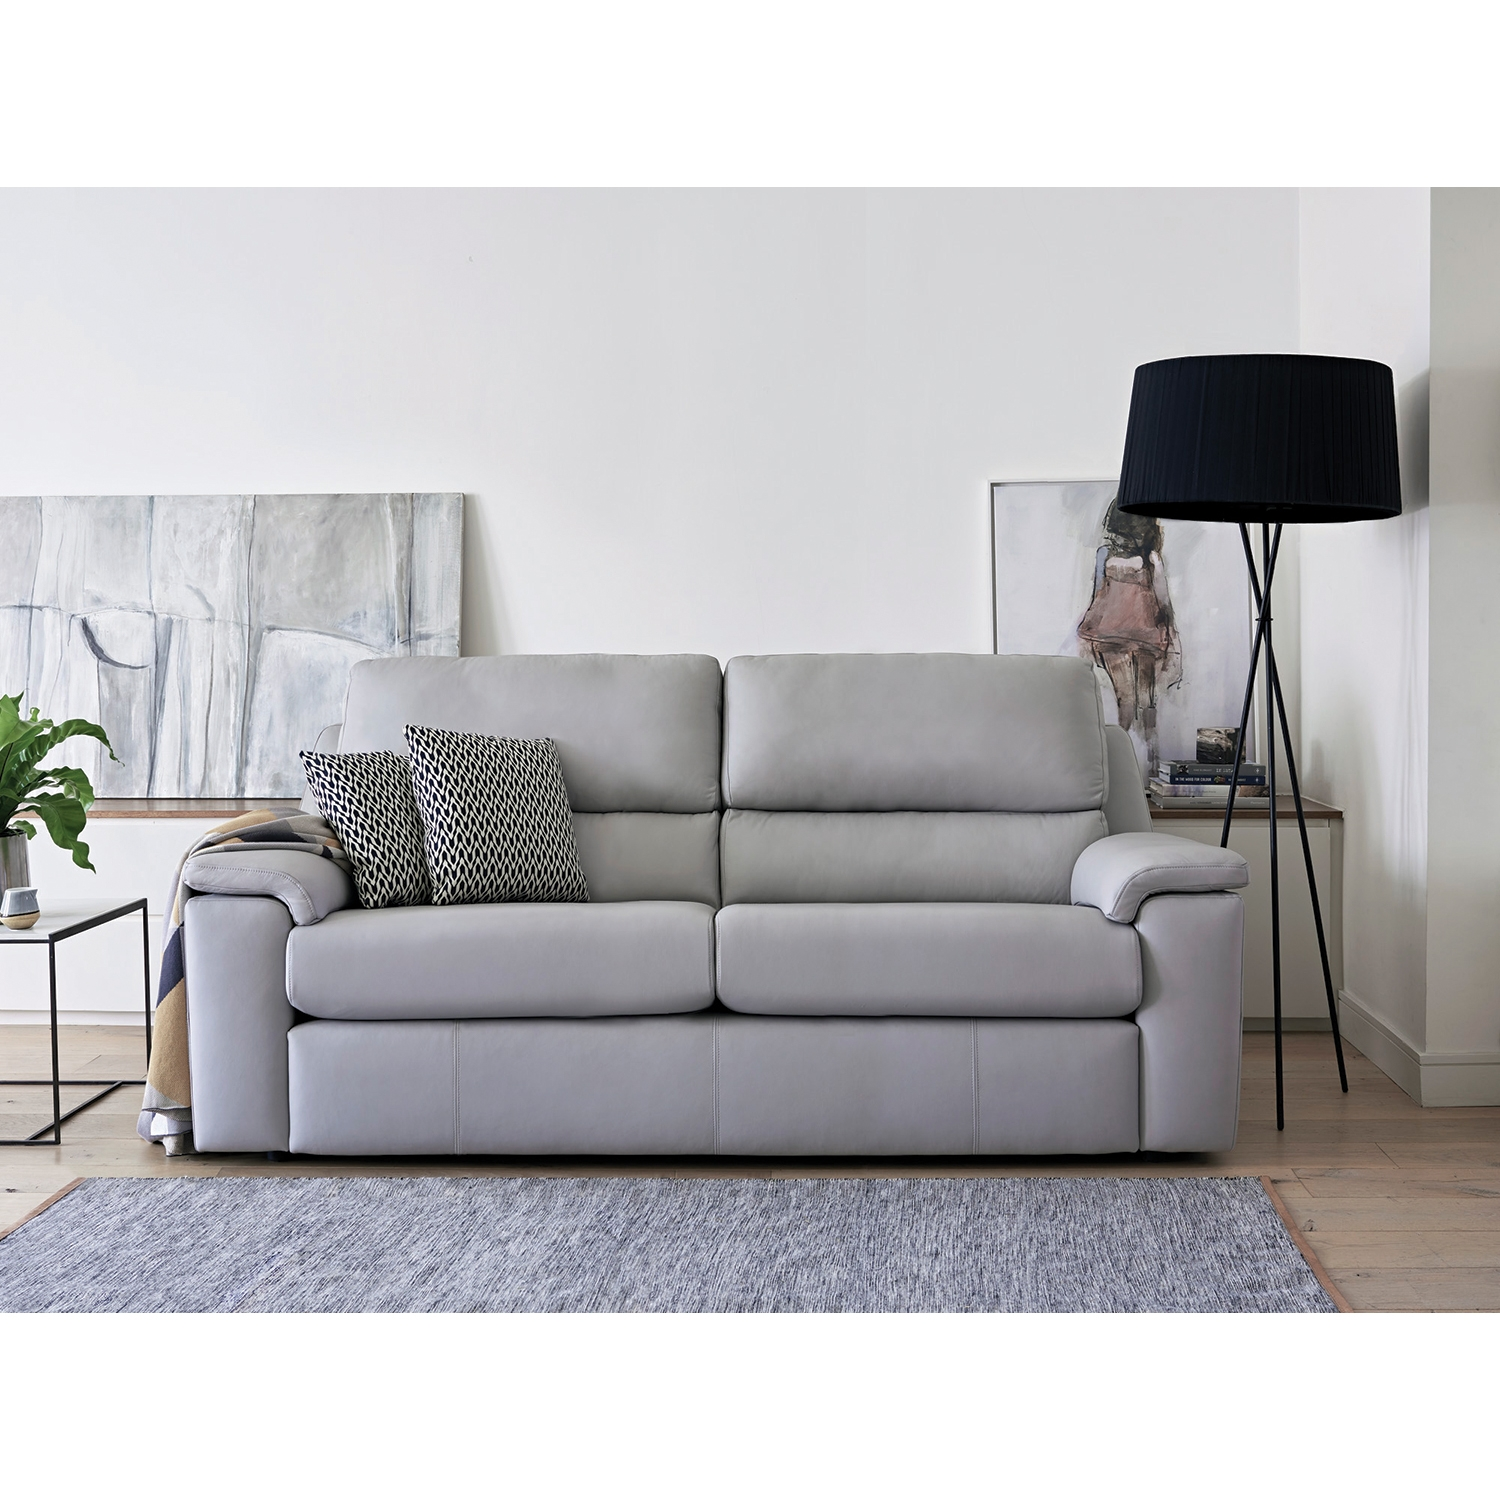 Image of G Plan Upholstery Taylor 2 Seater Leather Sofa